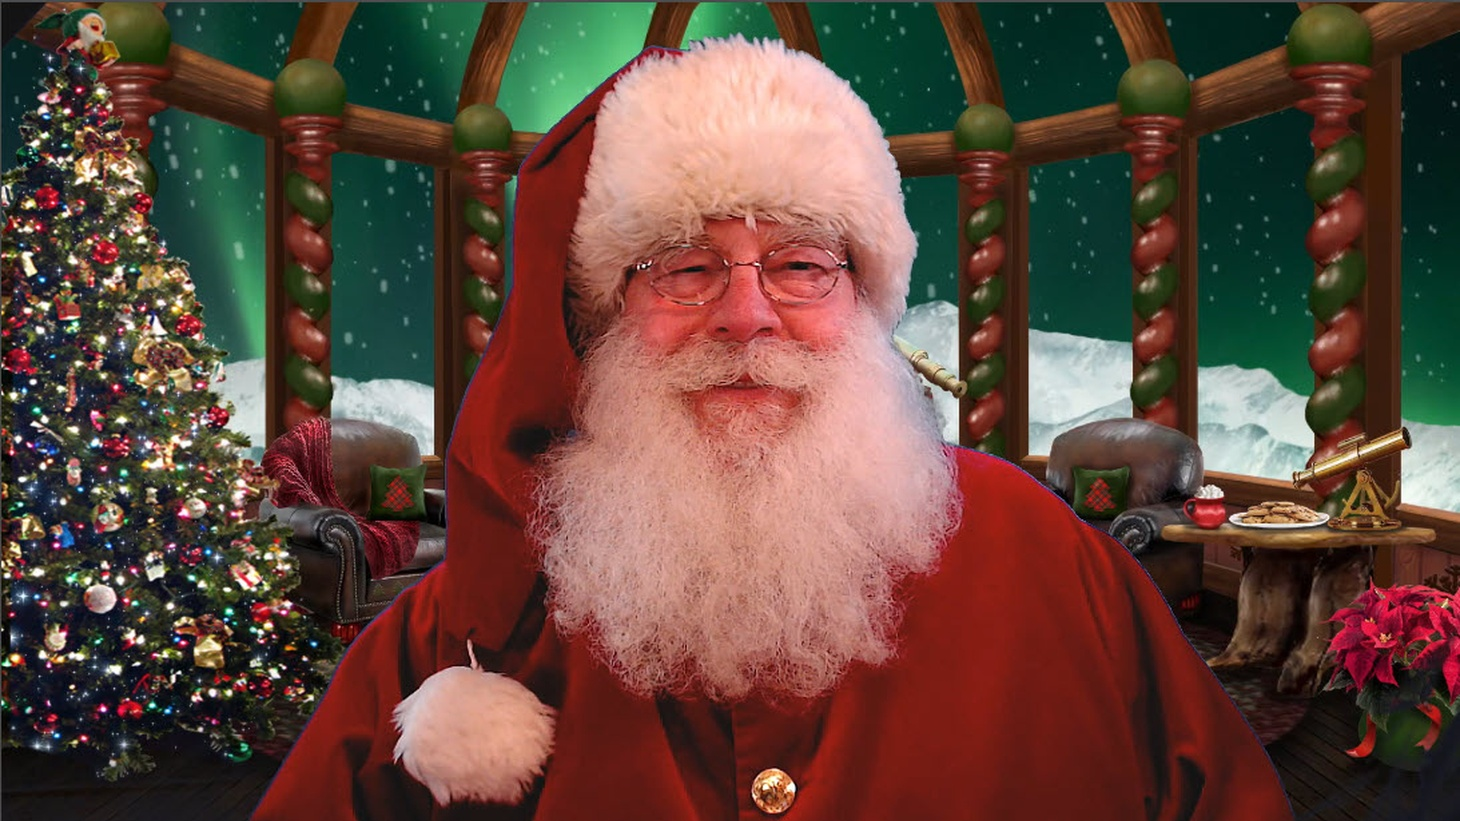 During his online visits, Santa Ed Taylor appears from the North Pole with the shimmering Aurora Borealis appearing through the windows of his digital background designed by his wife. Going virtual this year has allowed him to more than quadruple the number of visits he usually has — from 100 to some 400.